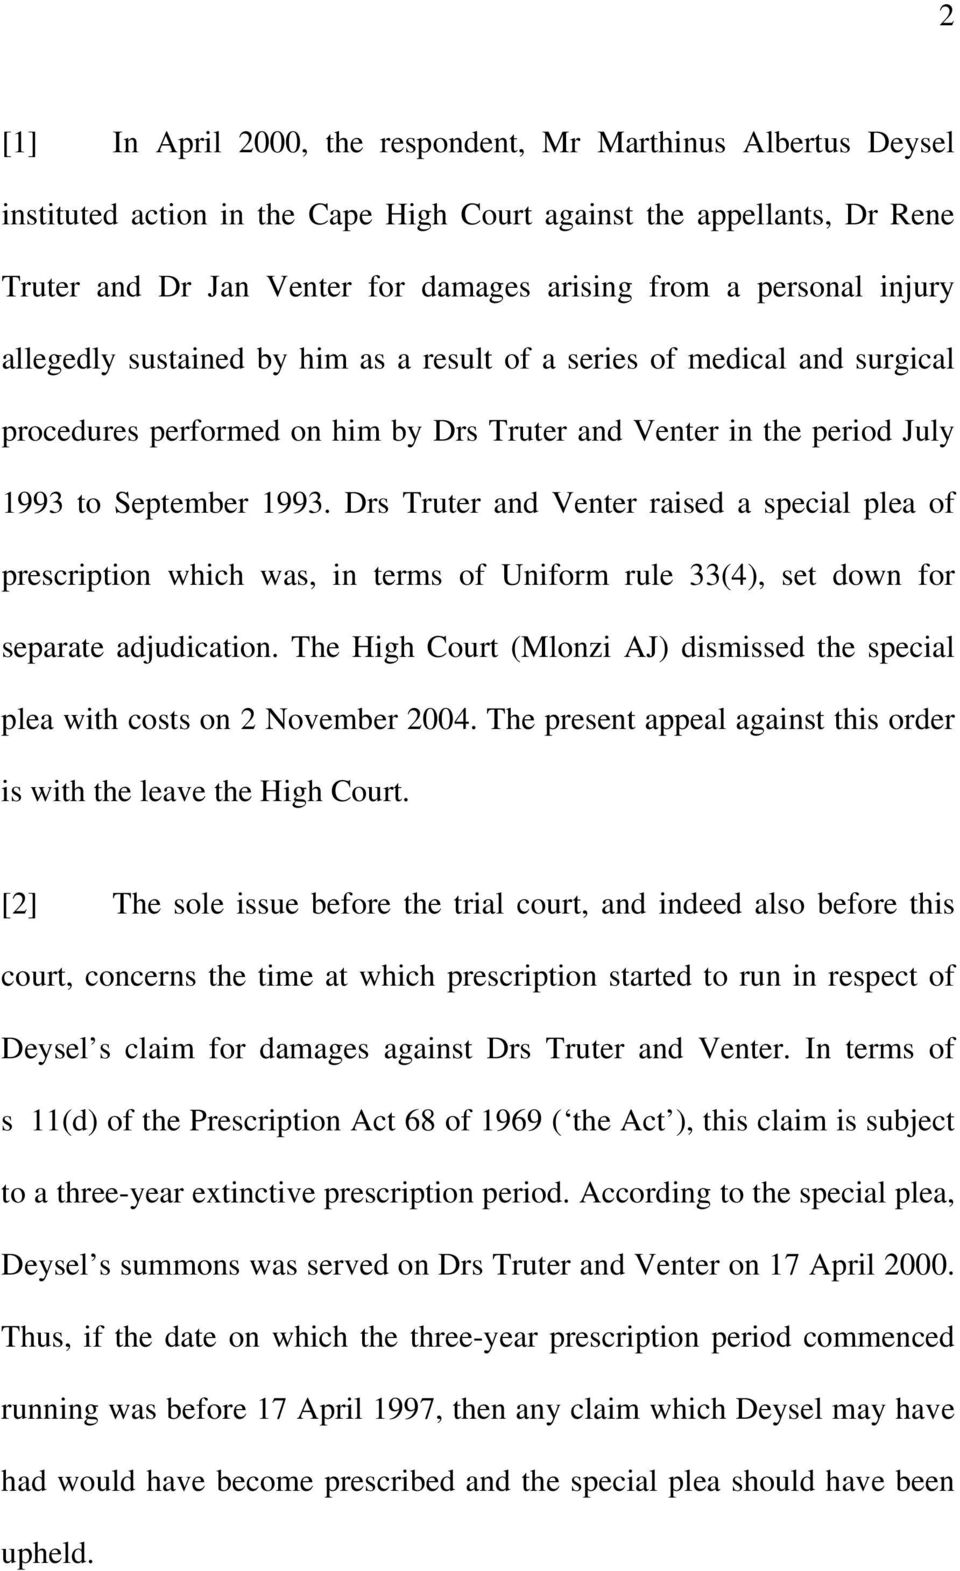 Drs Truter and Venter raised a special plea of prescription which was, in terms of Uniform rule 33(4), set down for separate adjudication.